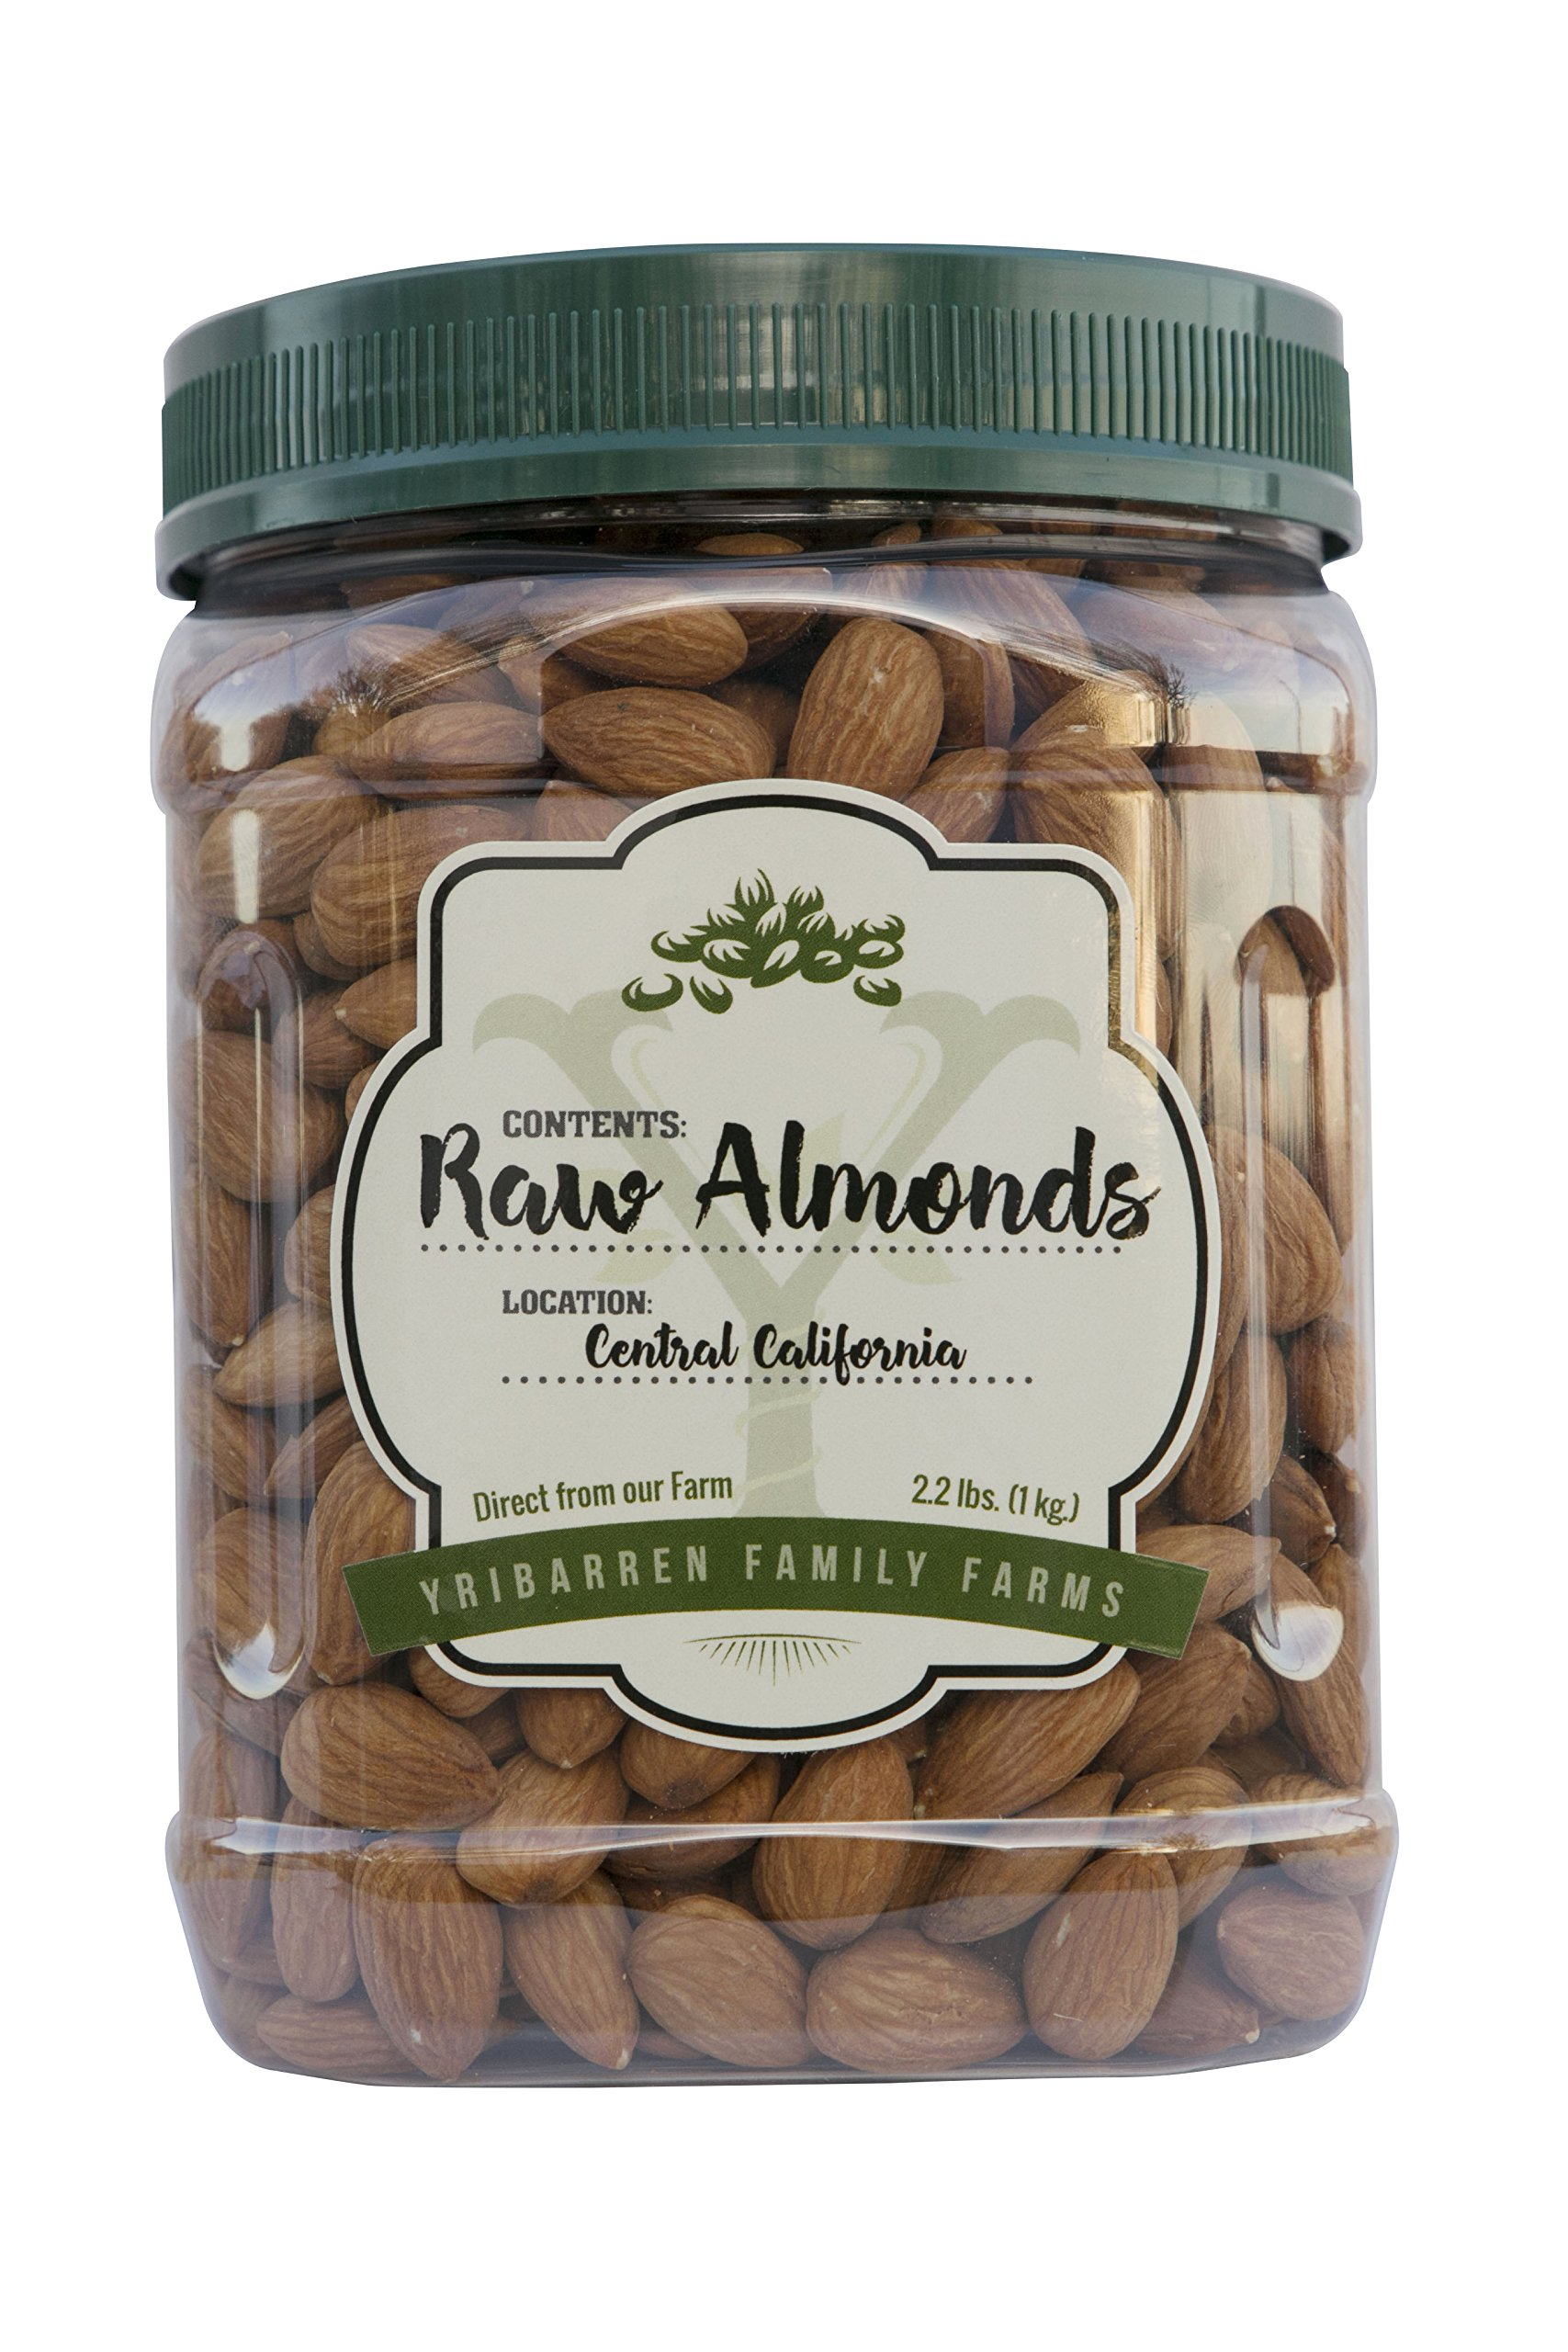 Steam Pasteurized Almonds Direct From Our Farm- 2.2 LB Resealable Jar